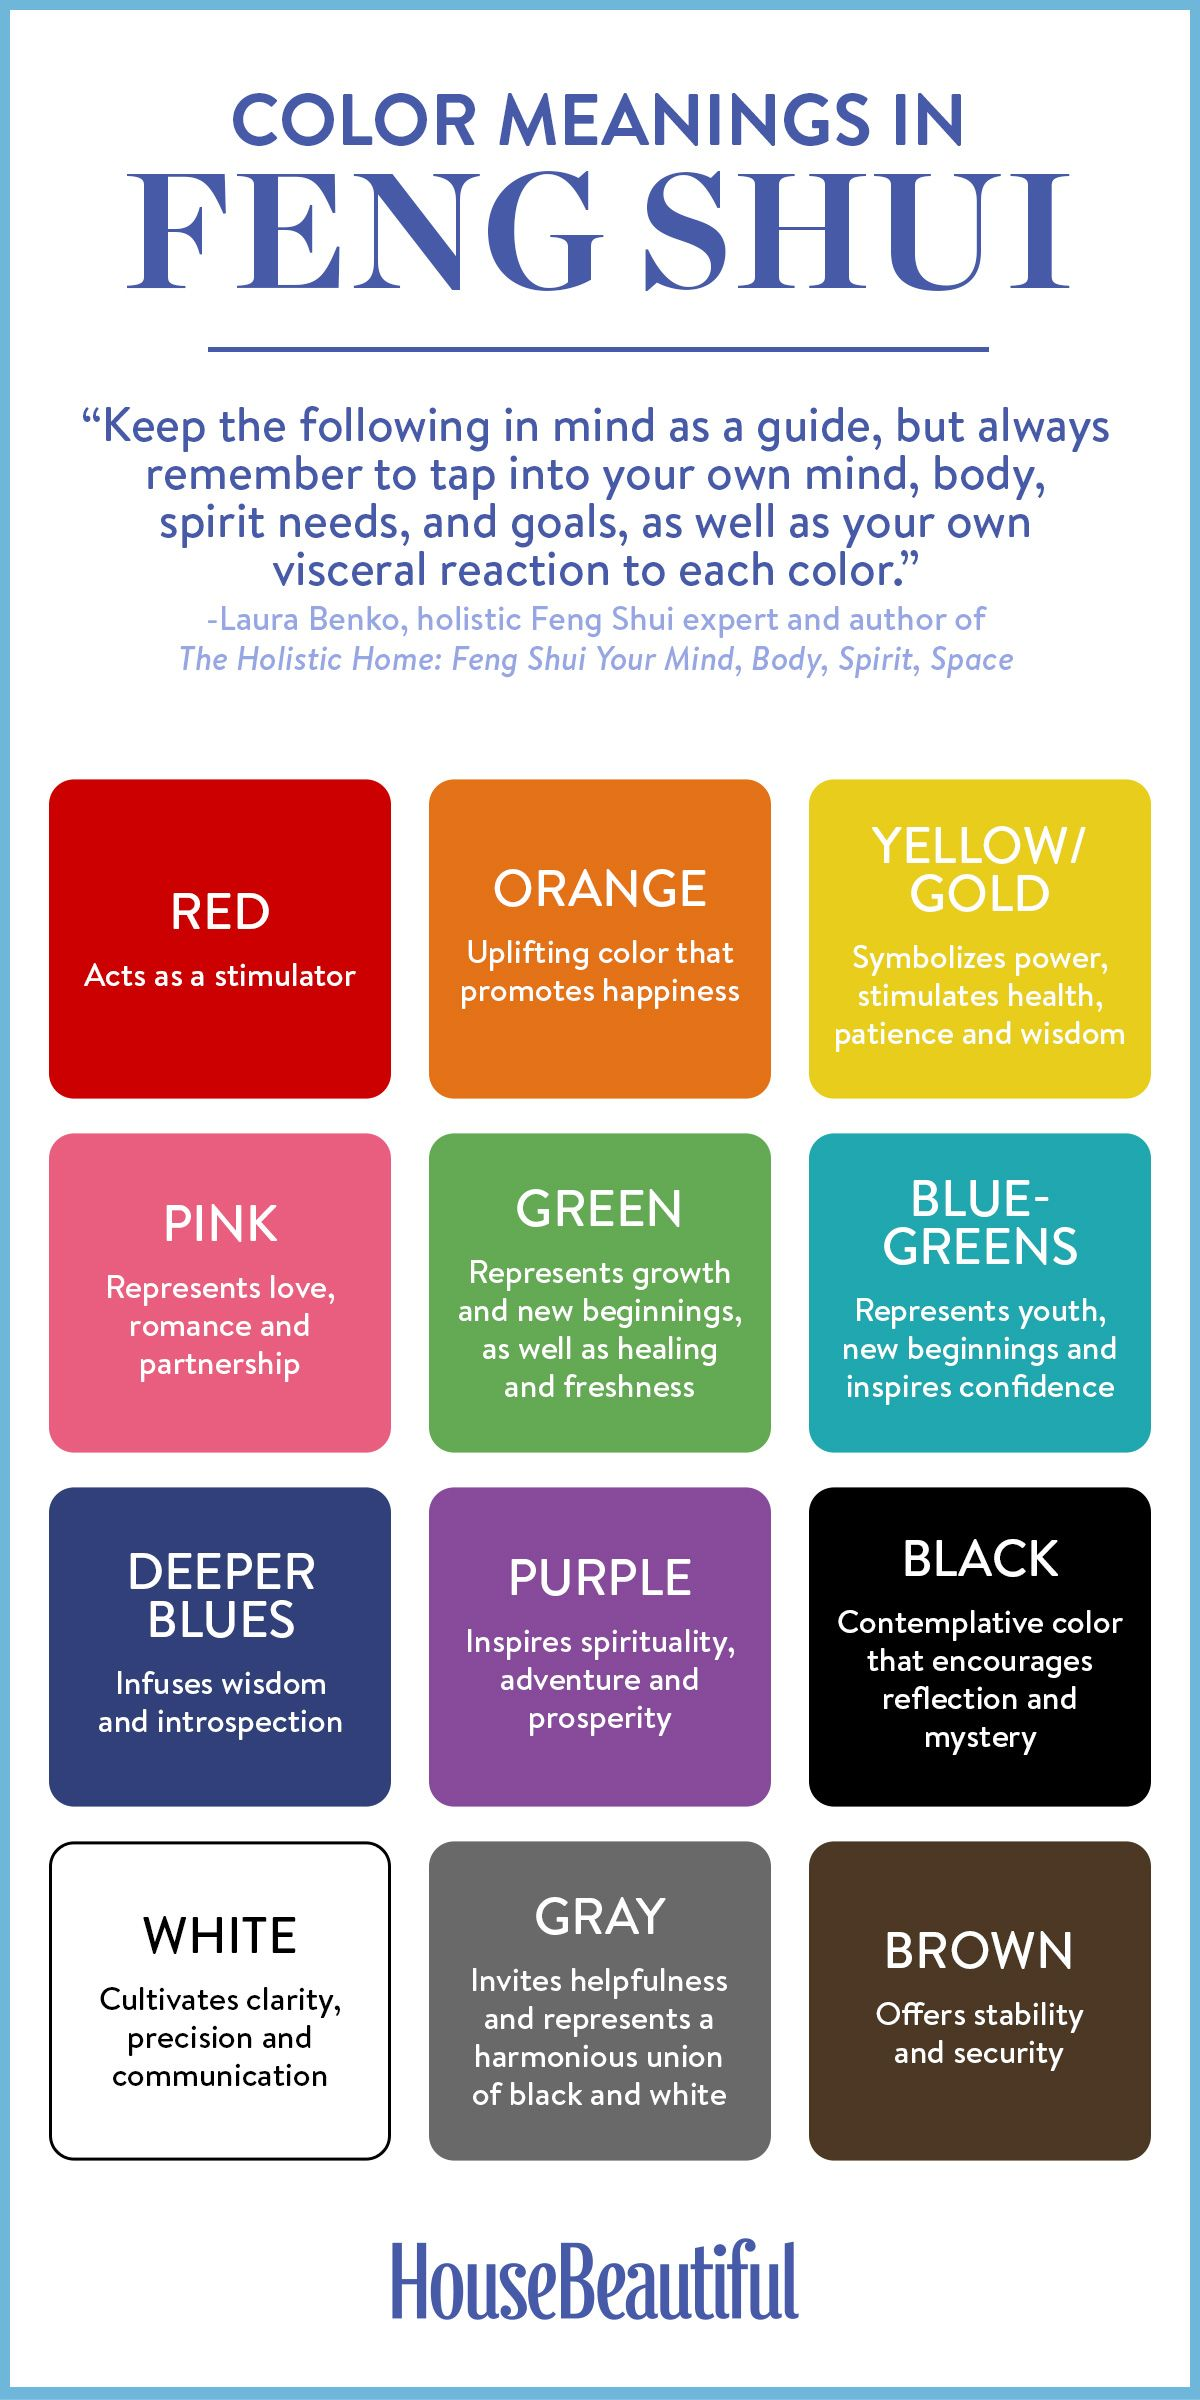 How To Choose The Perfect Color The Feng Shui Way Feng Shui Guide Feng Shui Colours Feng Shui